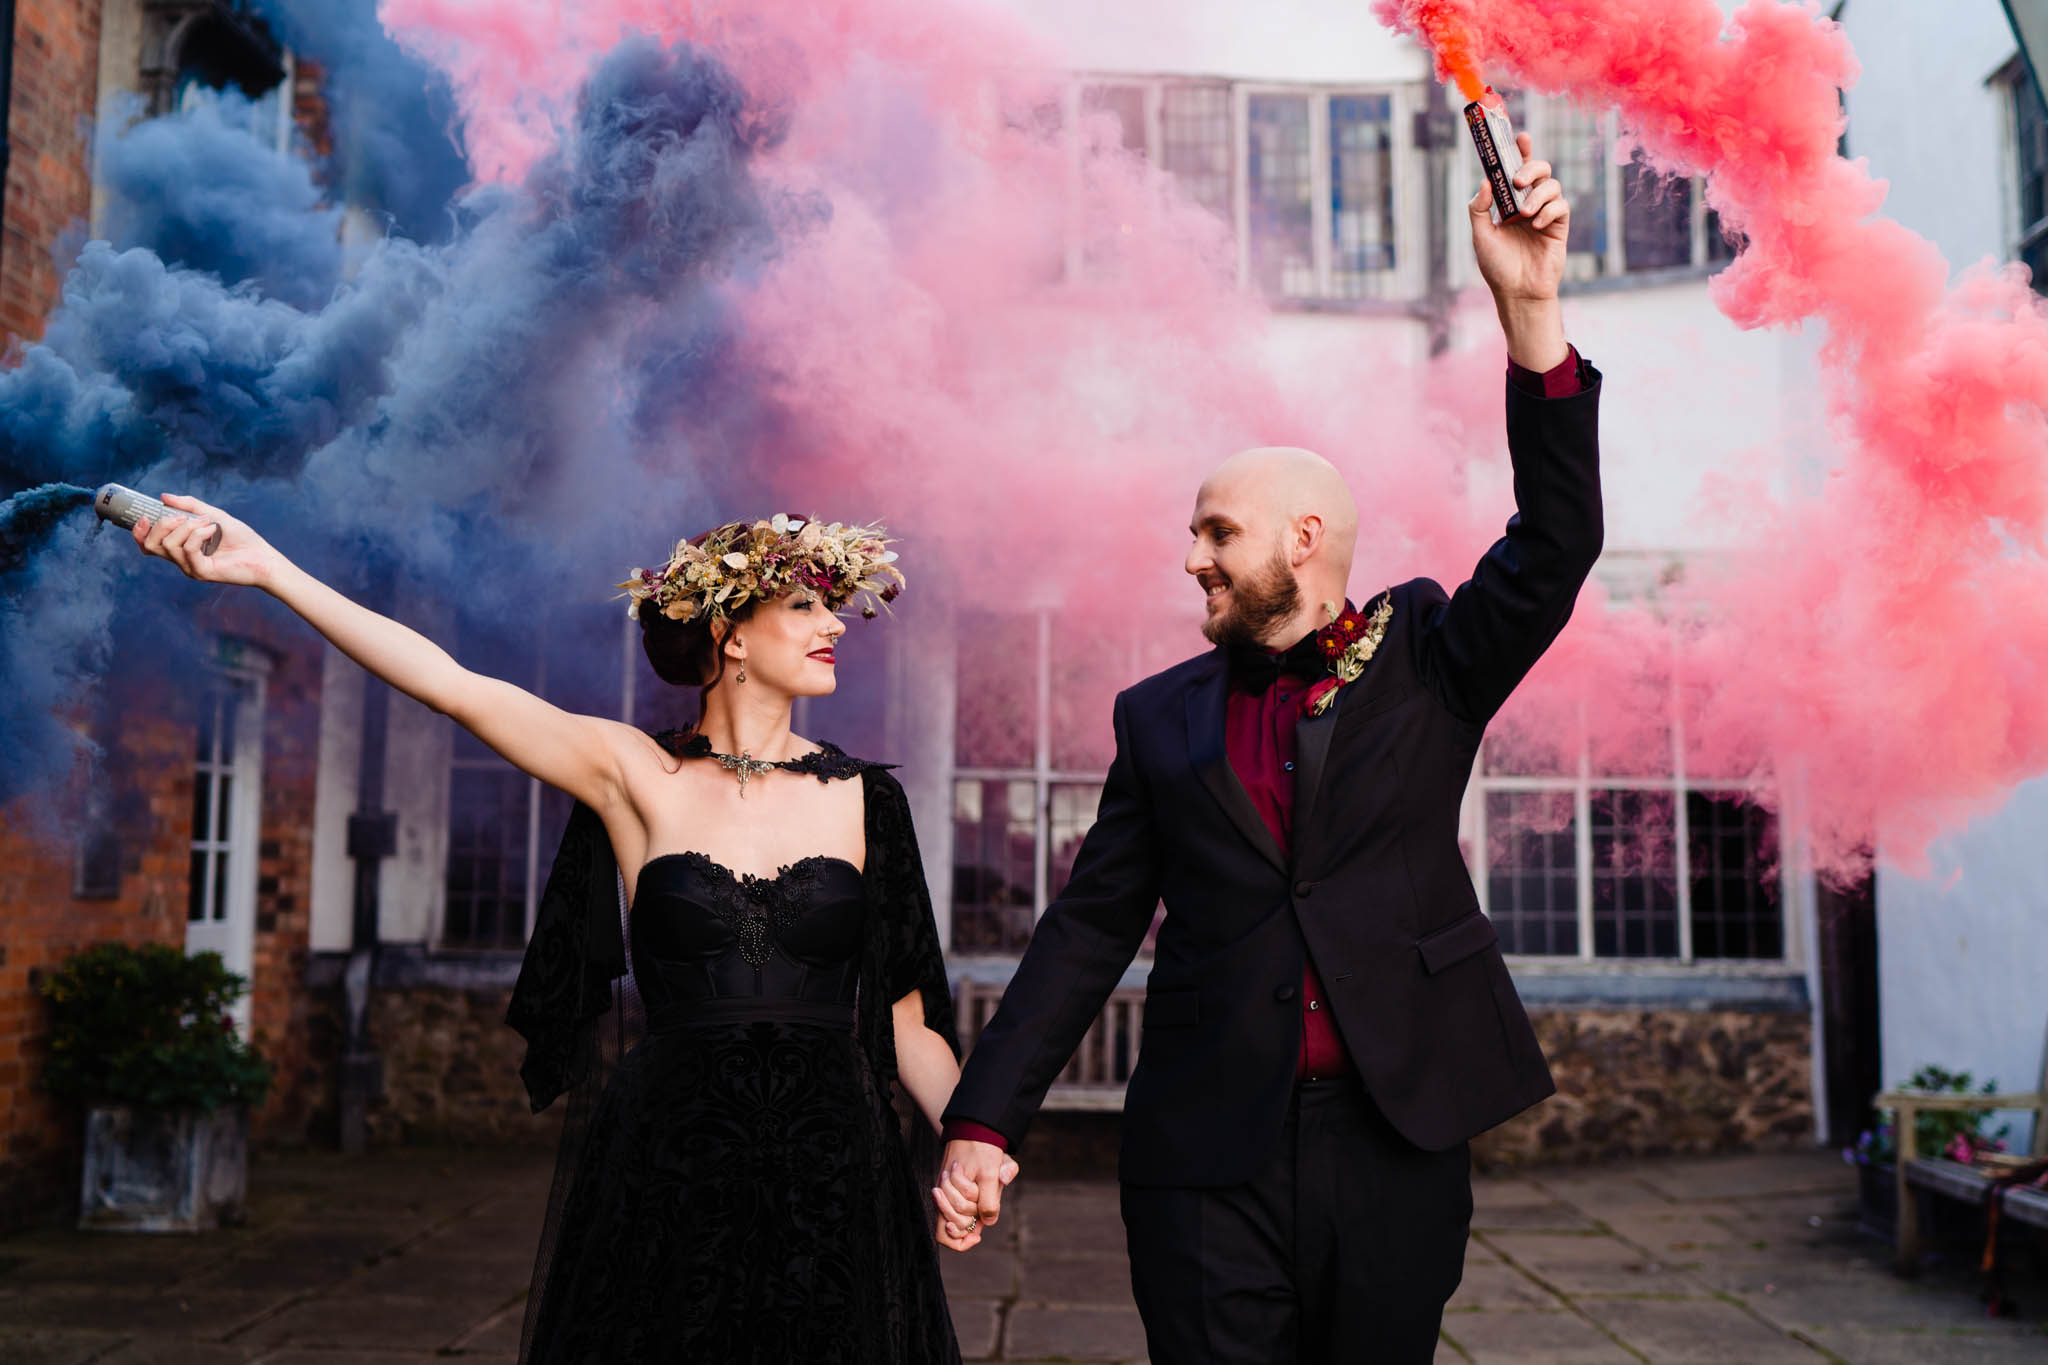 elegant gothic wedding - gothic wedding - autumn wedding - colourful wedding smoke bomb - black wedding dress